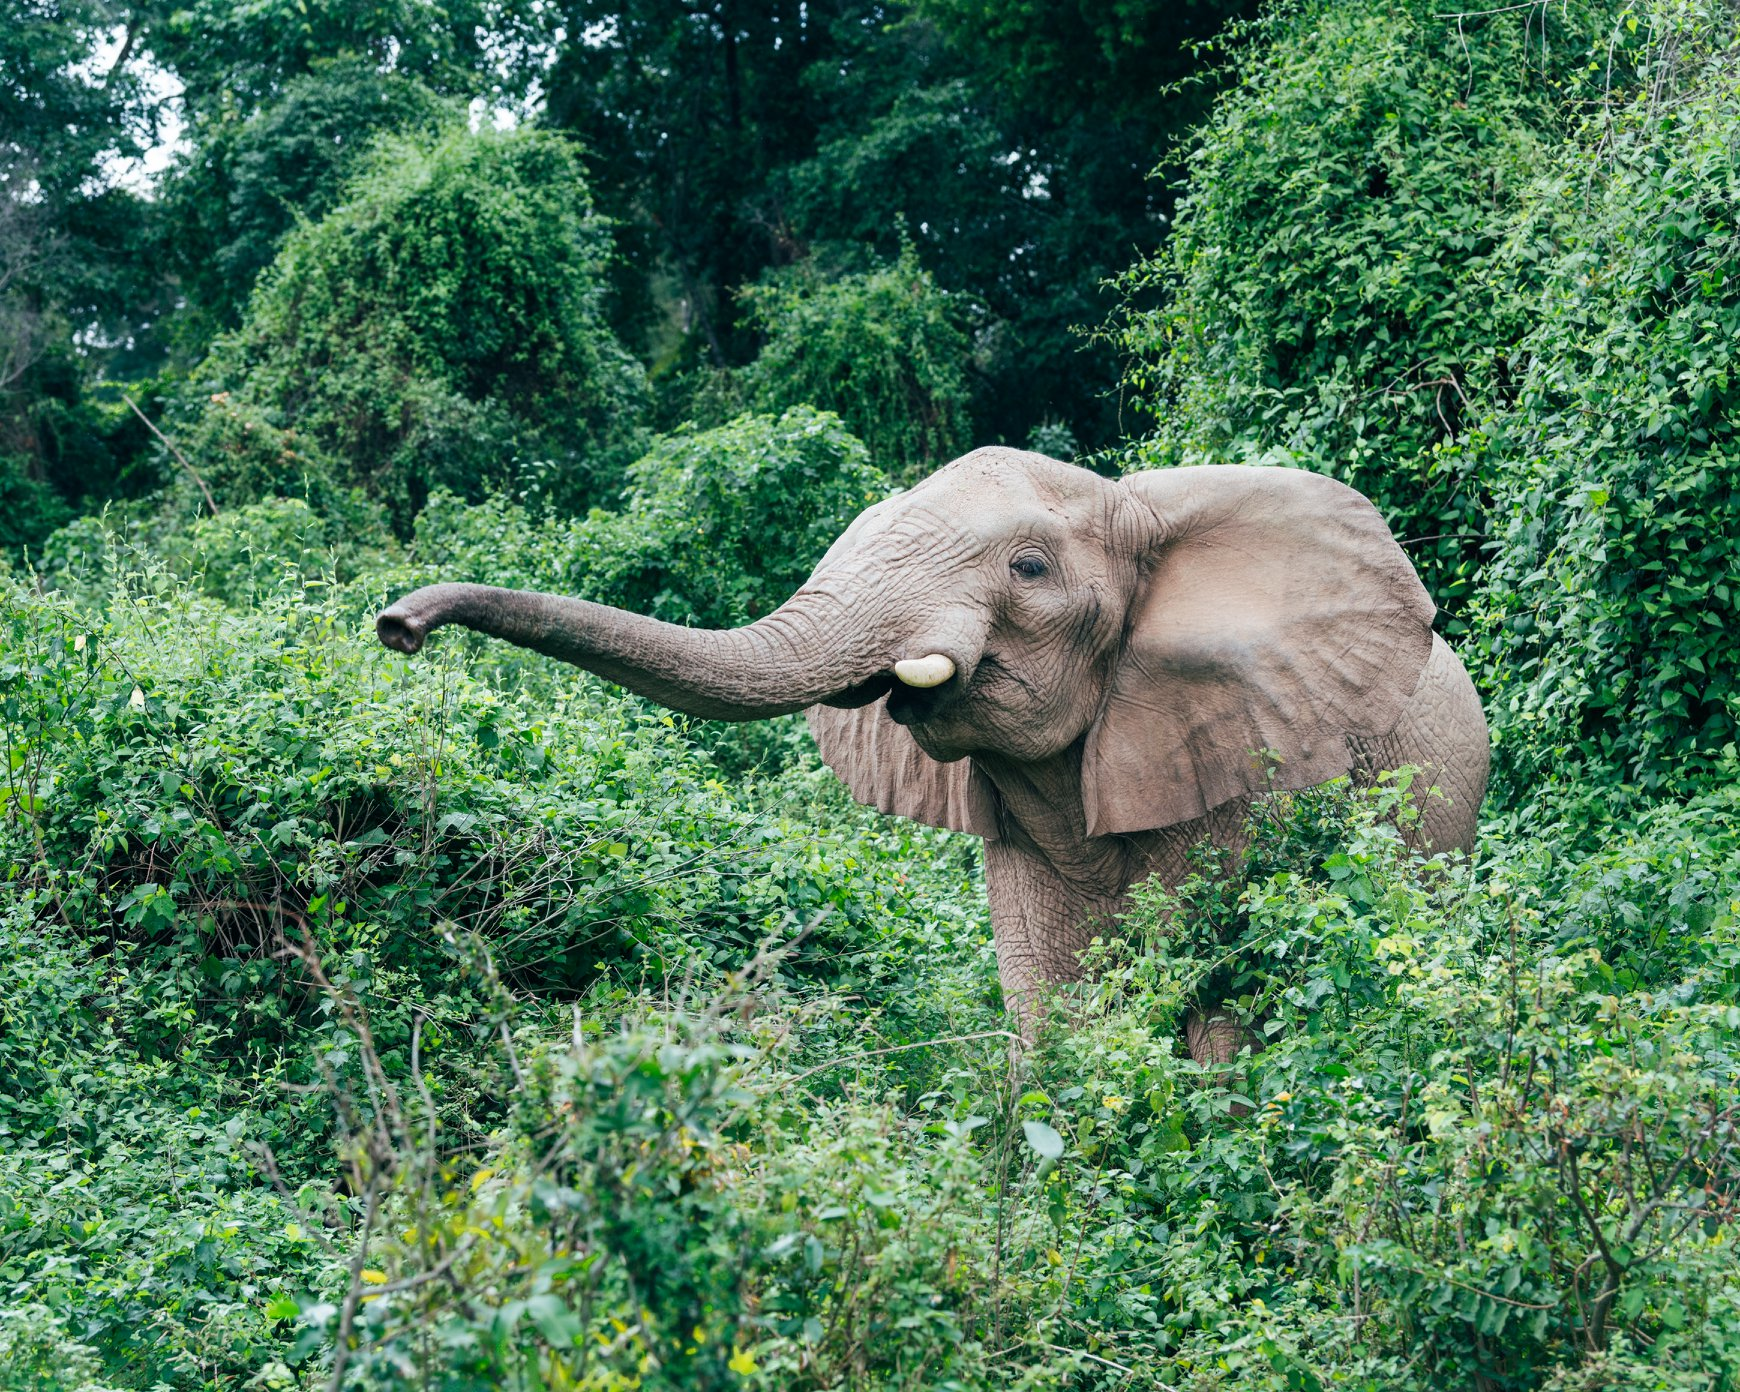 Elephant seen in the forests on Robundo Island